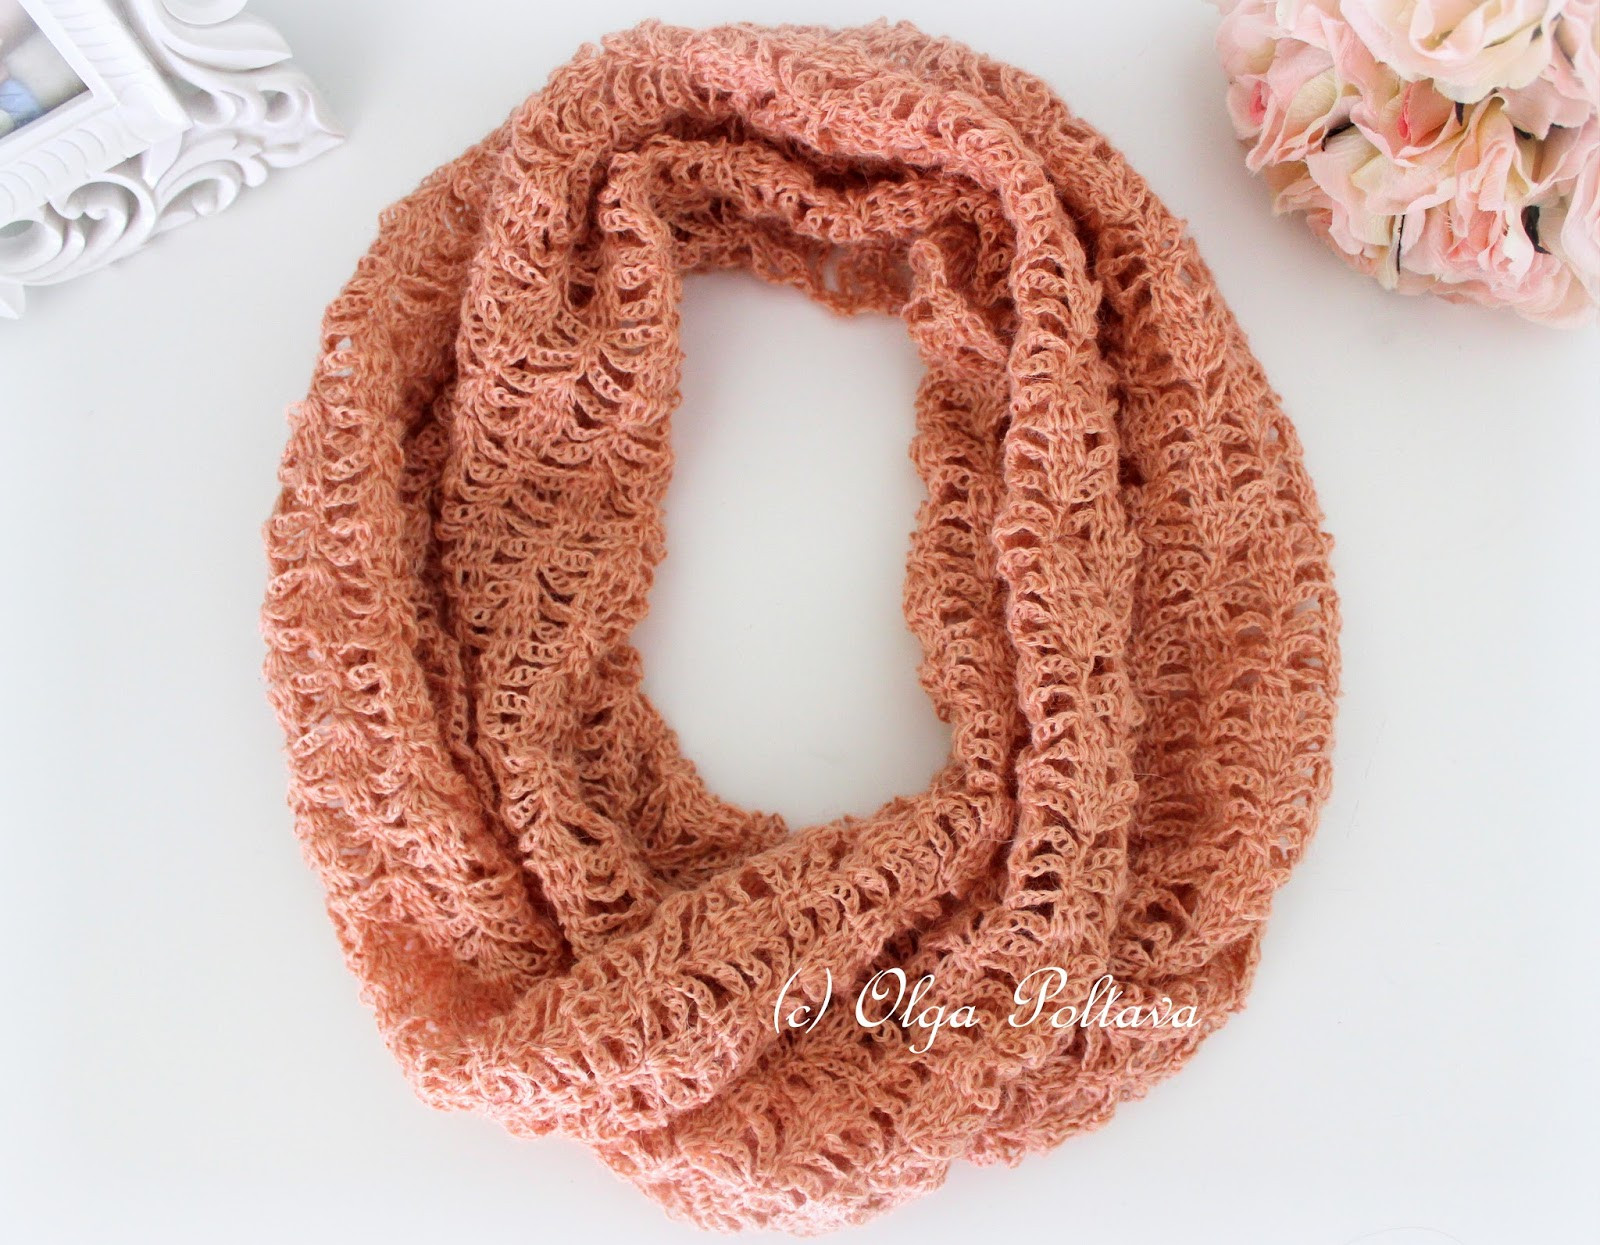 Crochet Lace Pattern Fresh Lacy Crochet Peach Lace Infinity Crochet Scarf Of Gorgeous 50 Photos Crochet Lace Pattern